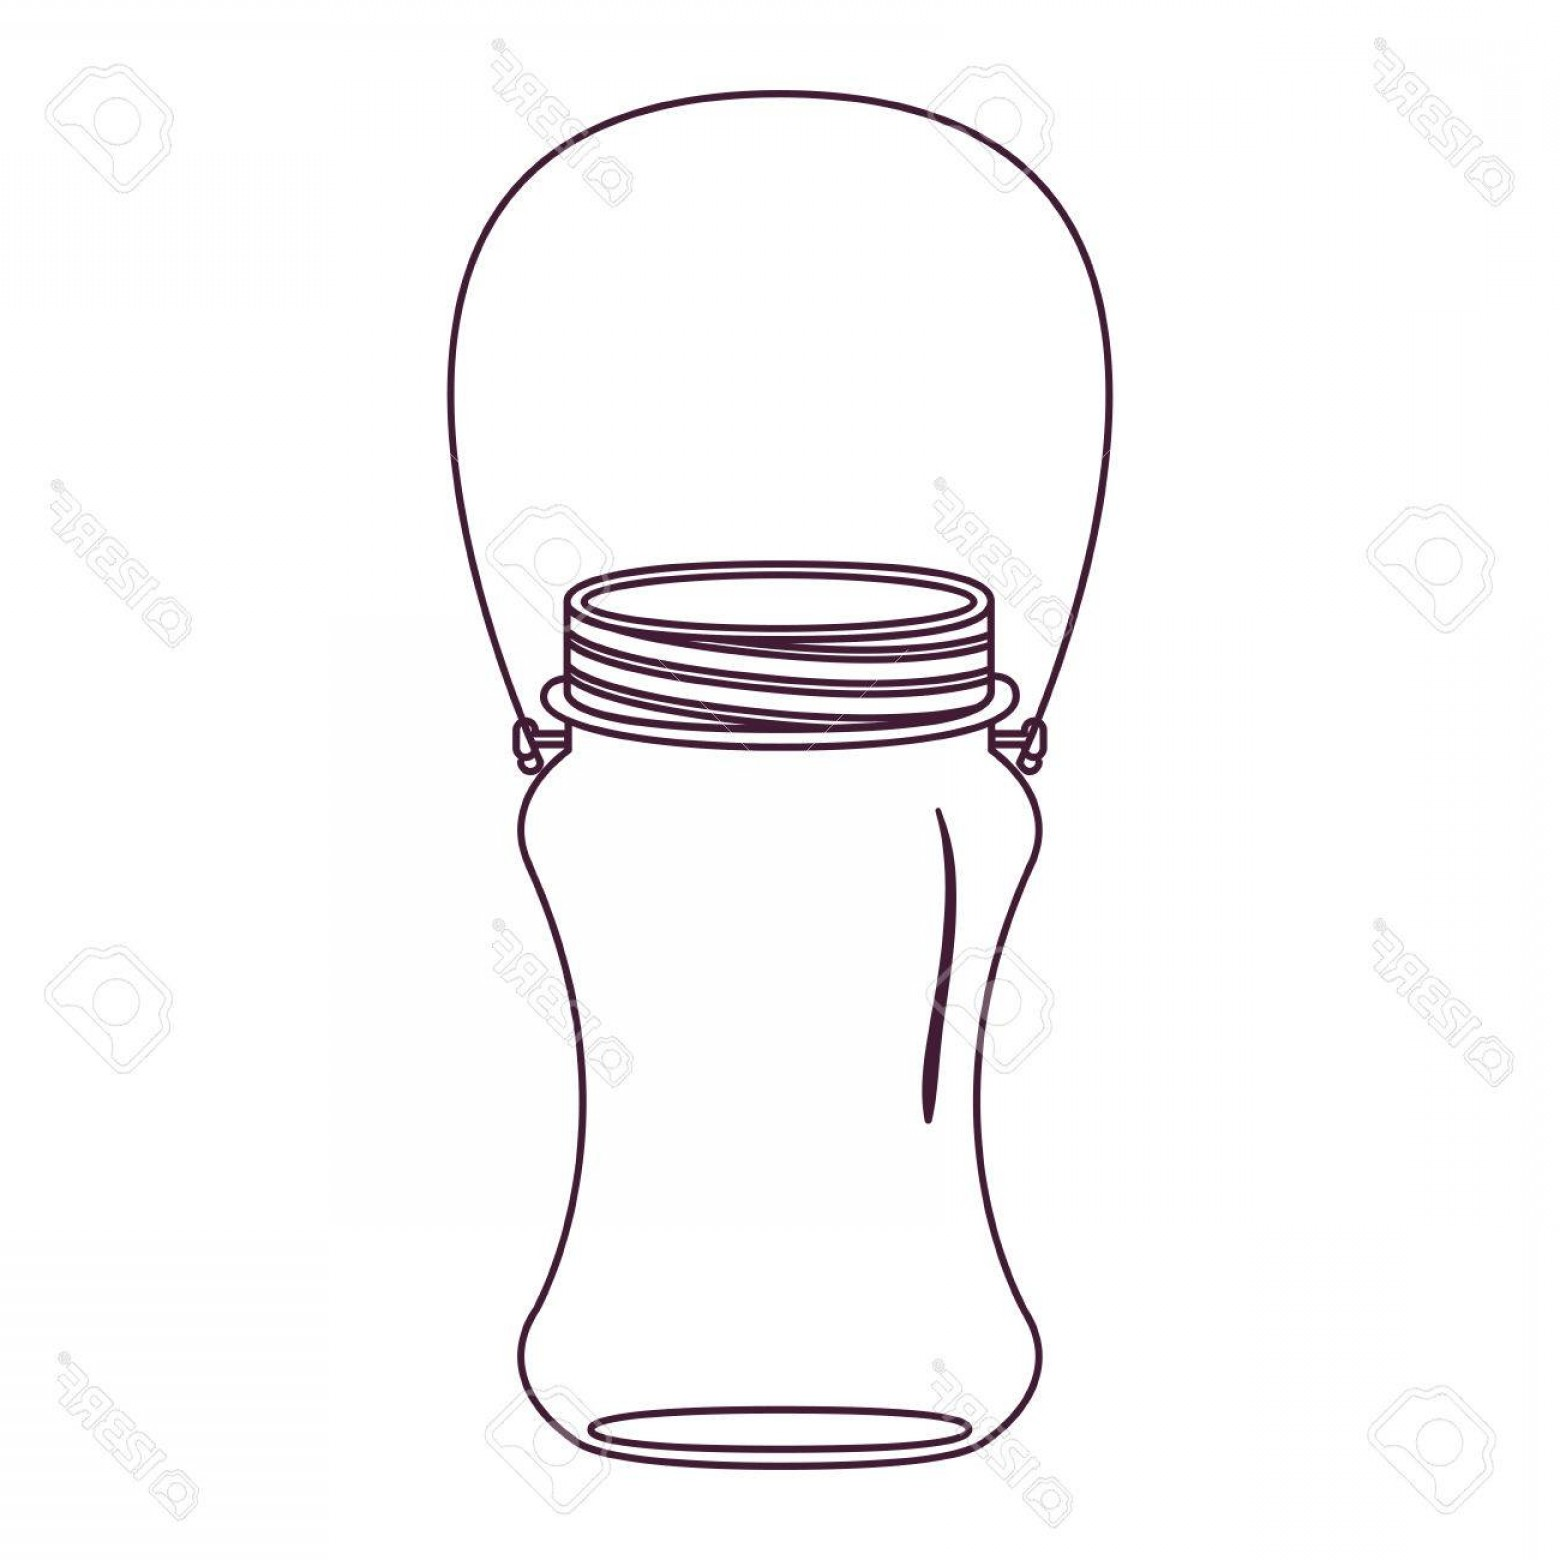 Mason Jar Outline Vector: Photostock Vector Silhouette Curved Glass Container With Handle Vector Illustration